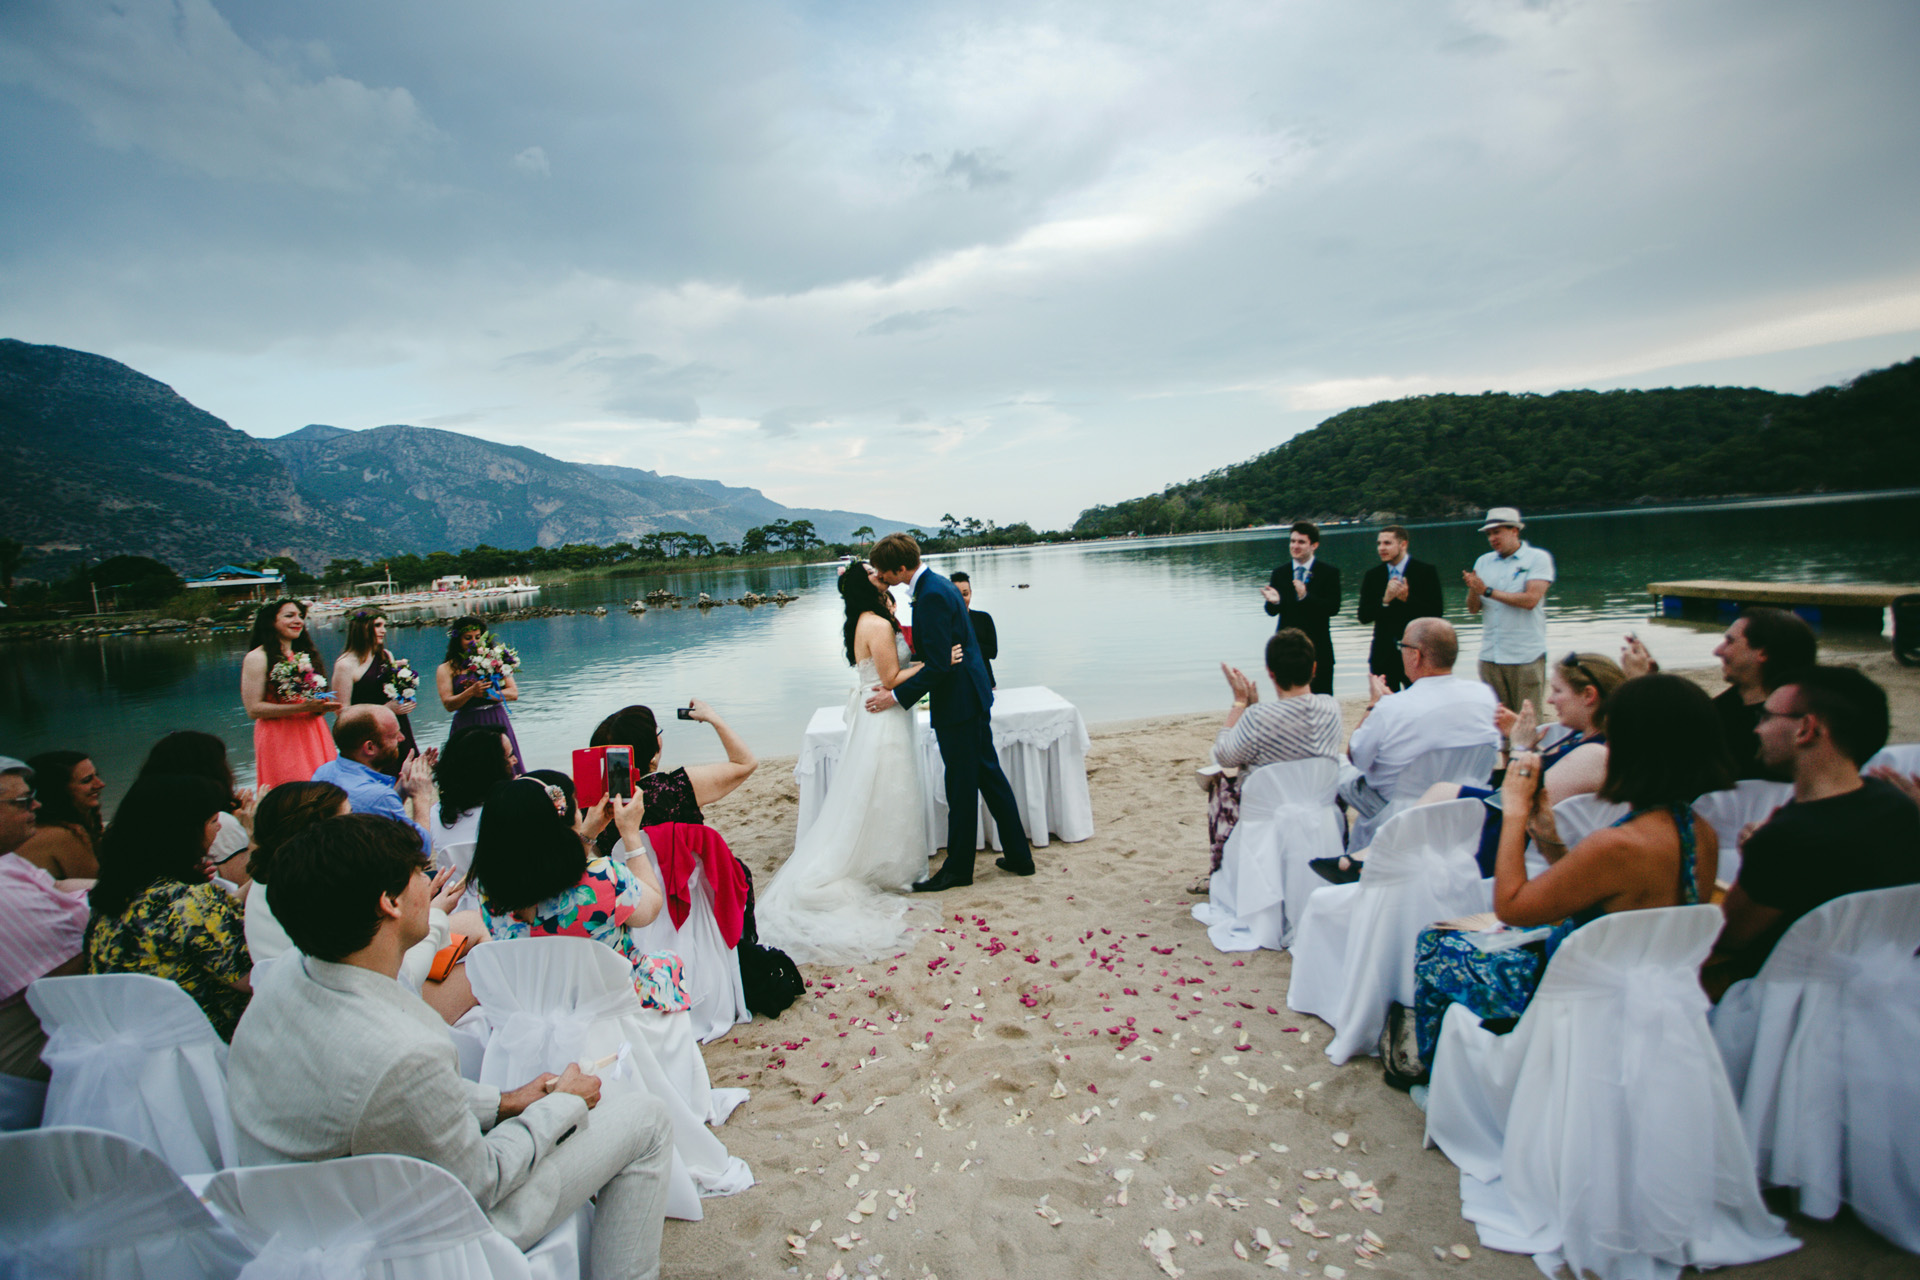 Oyster Residences Elopement Beach Ceremony Photo | This image shows the first kiss at the end of the ceremony